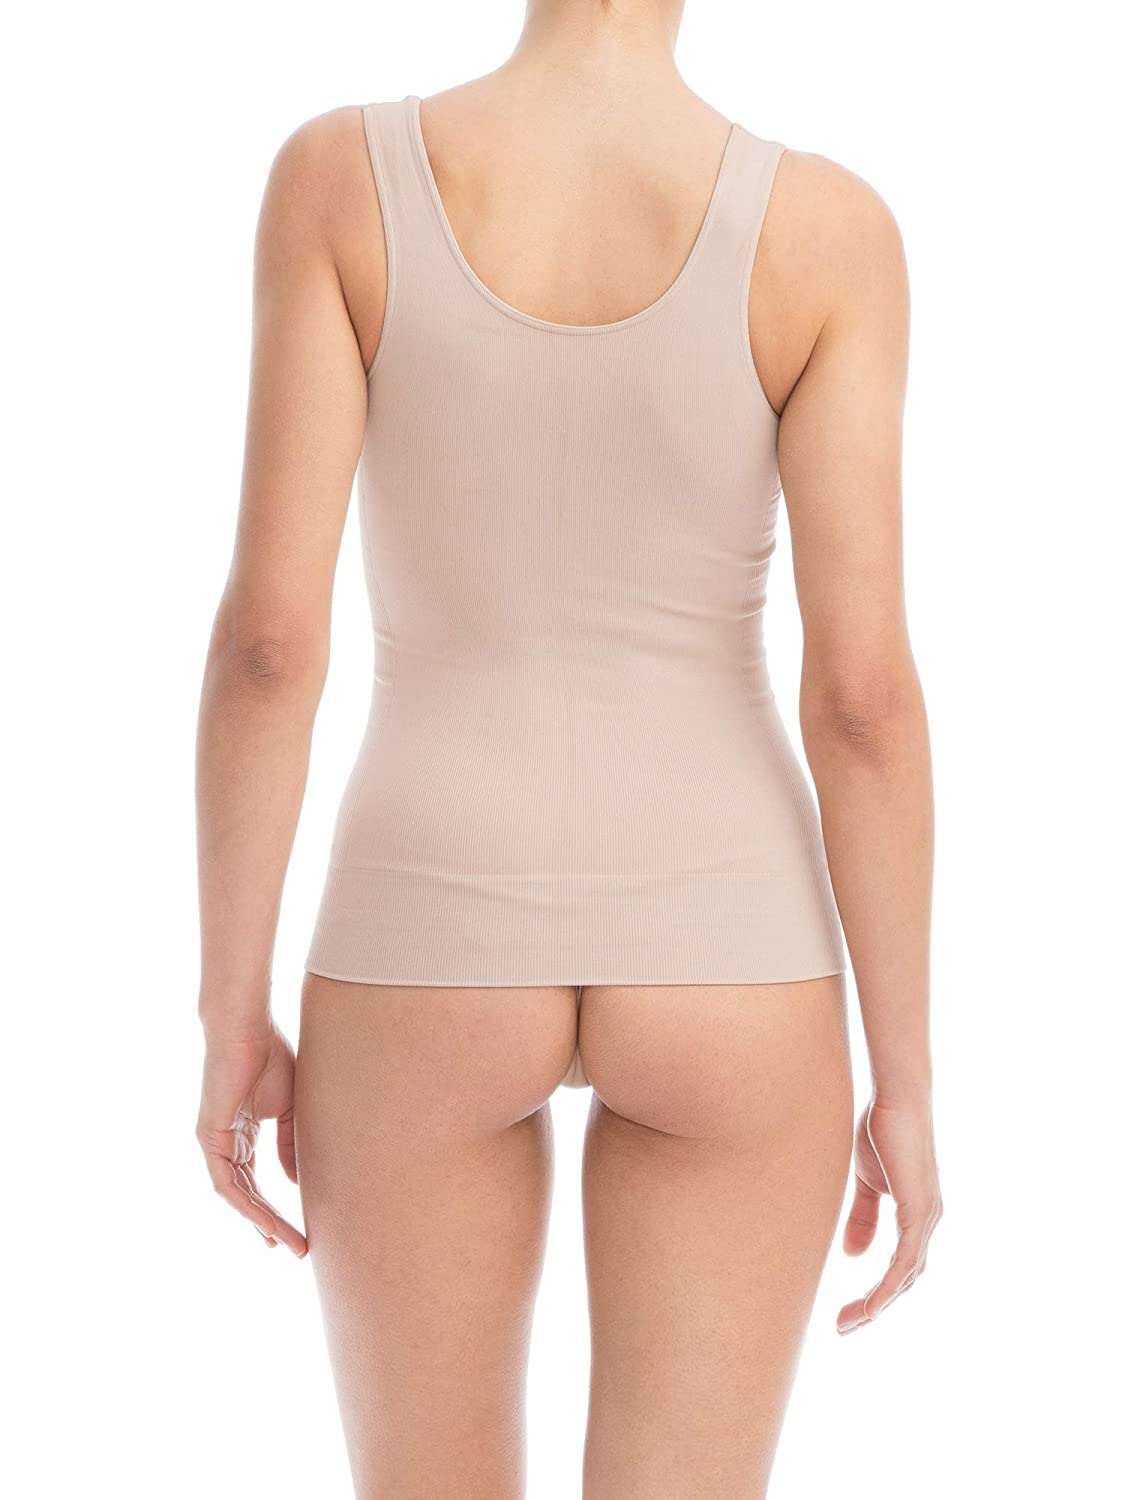 Farmacell Shape 607 Womens Shaping Control Vest with Flat Belly and Push-up Effect